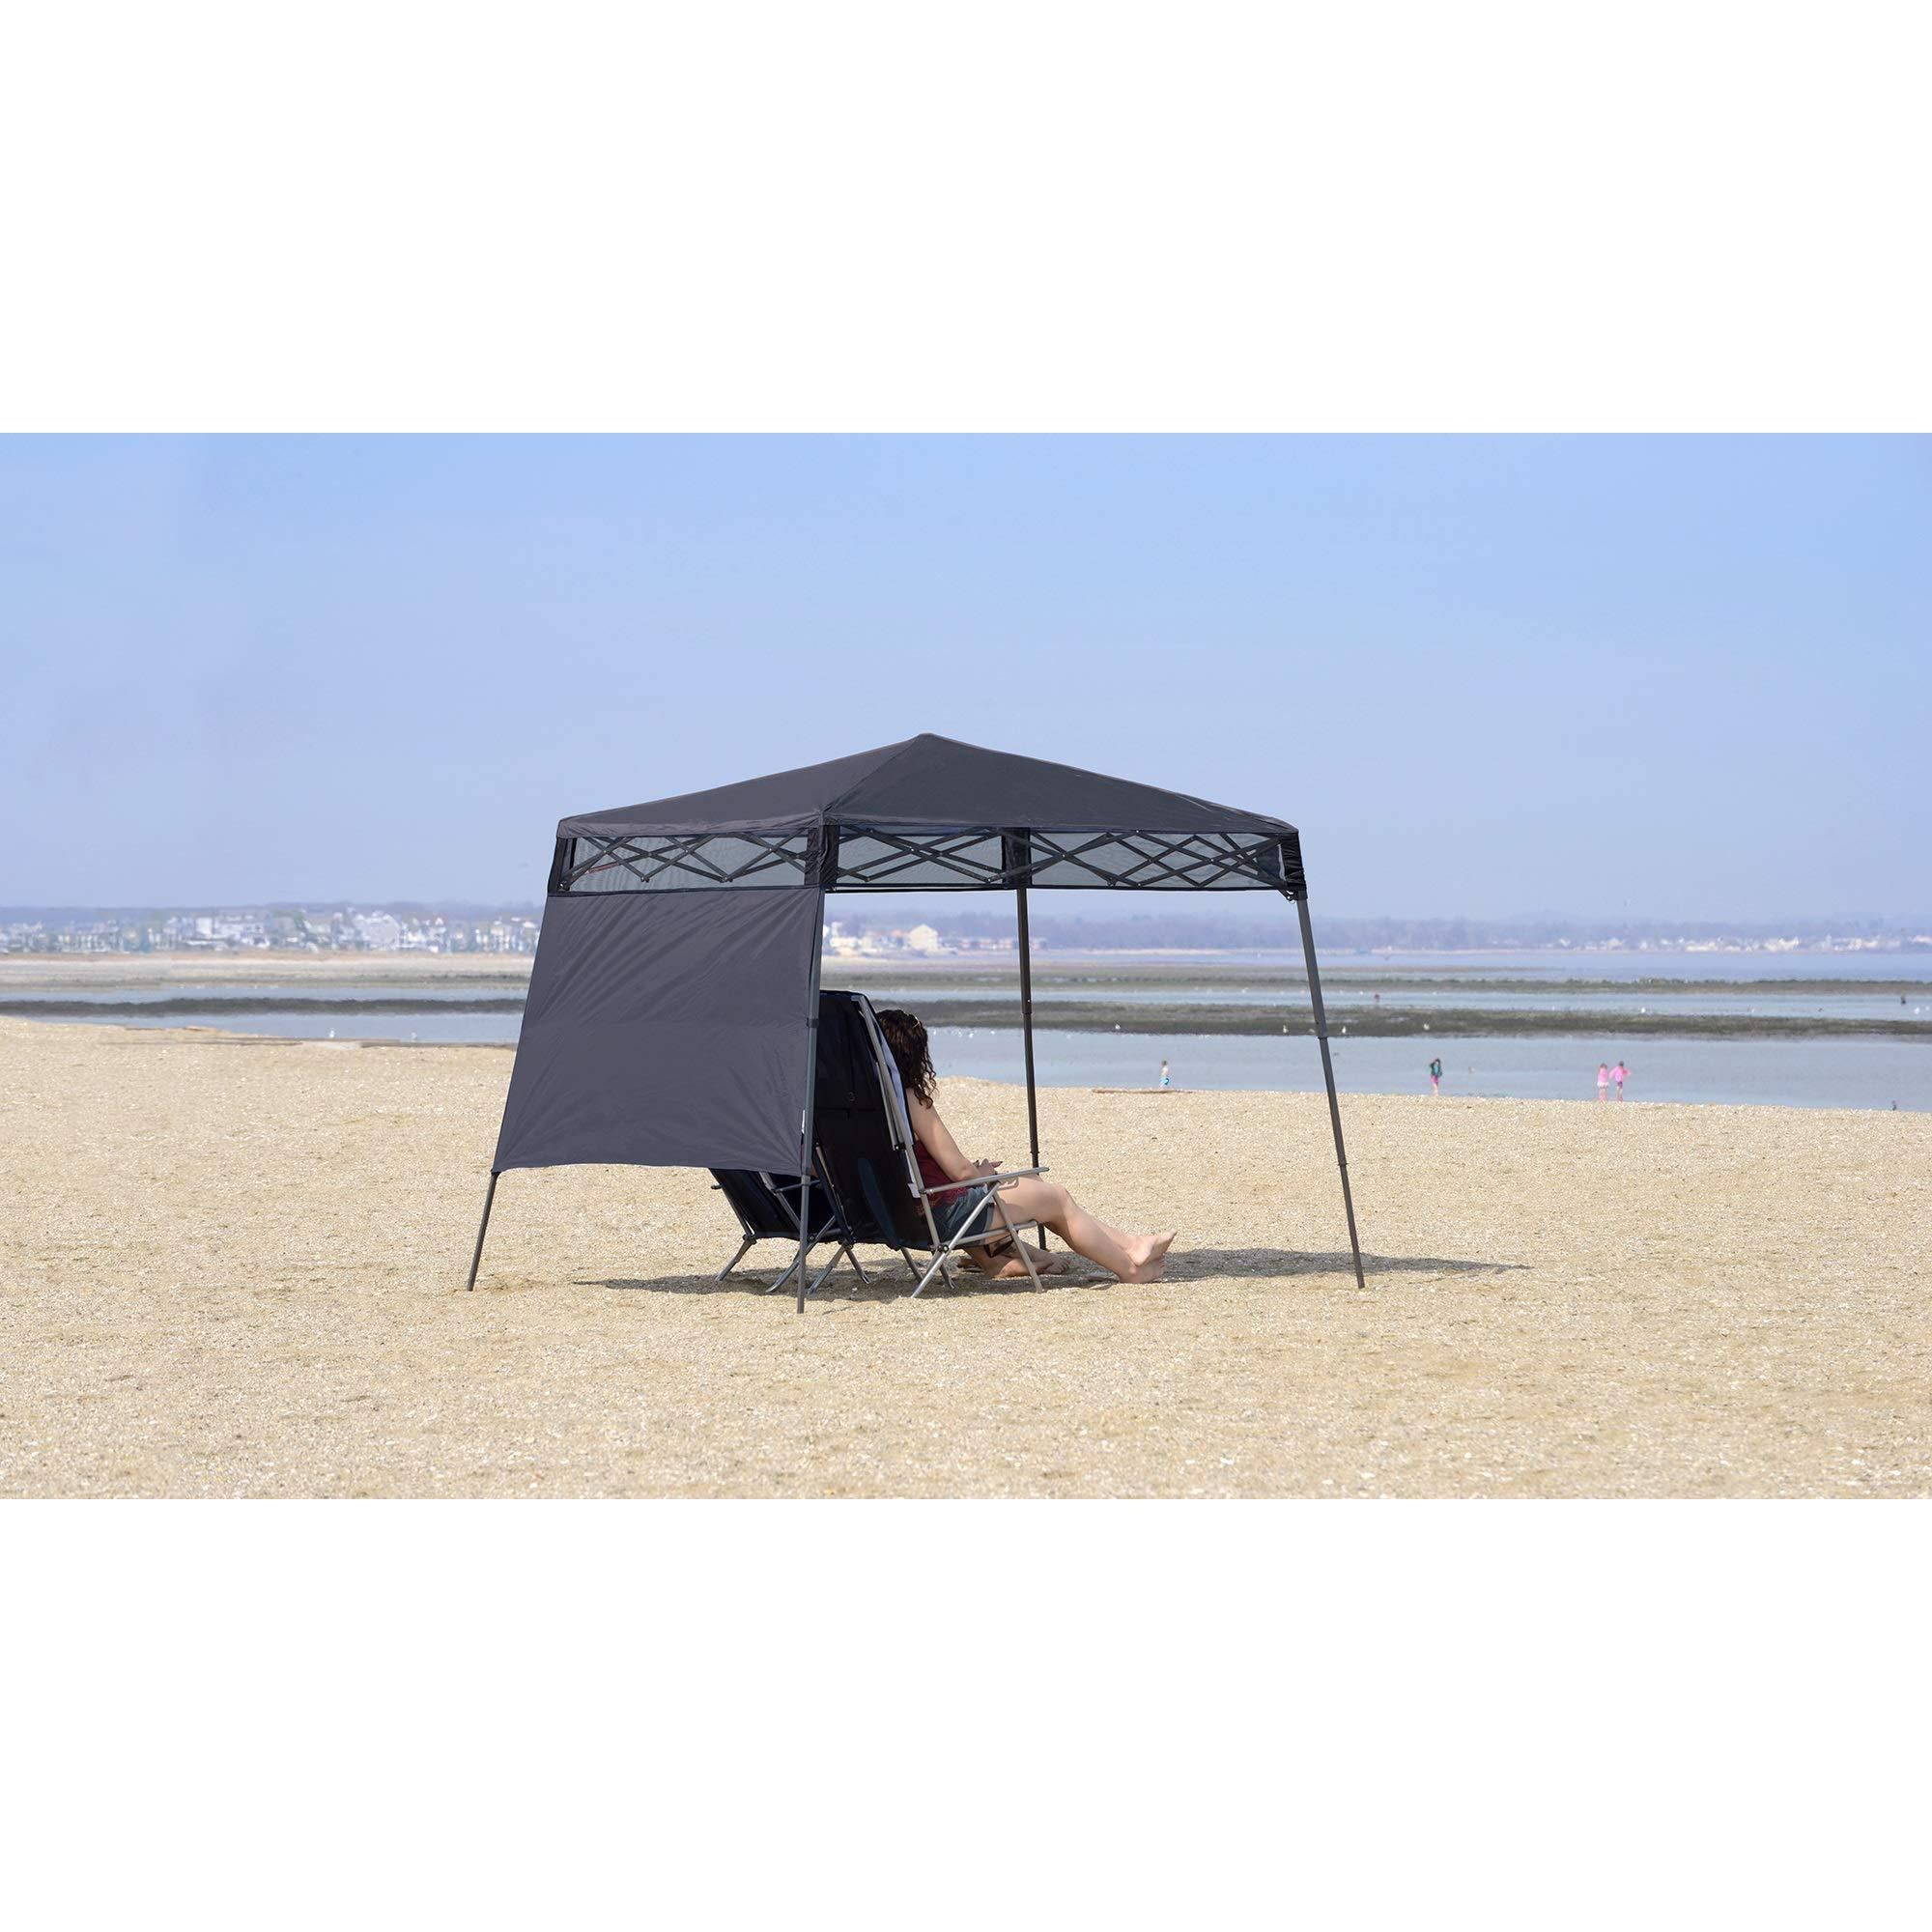 Quik Shade 7 X 7 Go Hybrid Pop Up Compact And Lightweight Slant Leg California Tools And Equipment